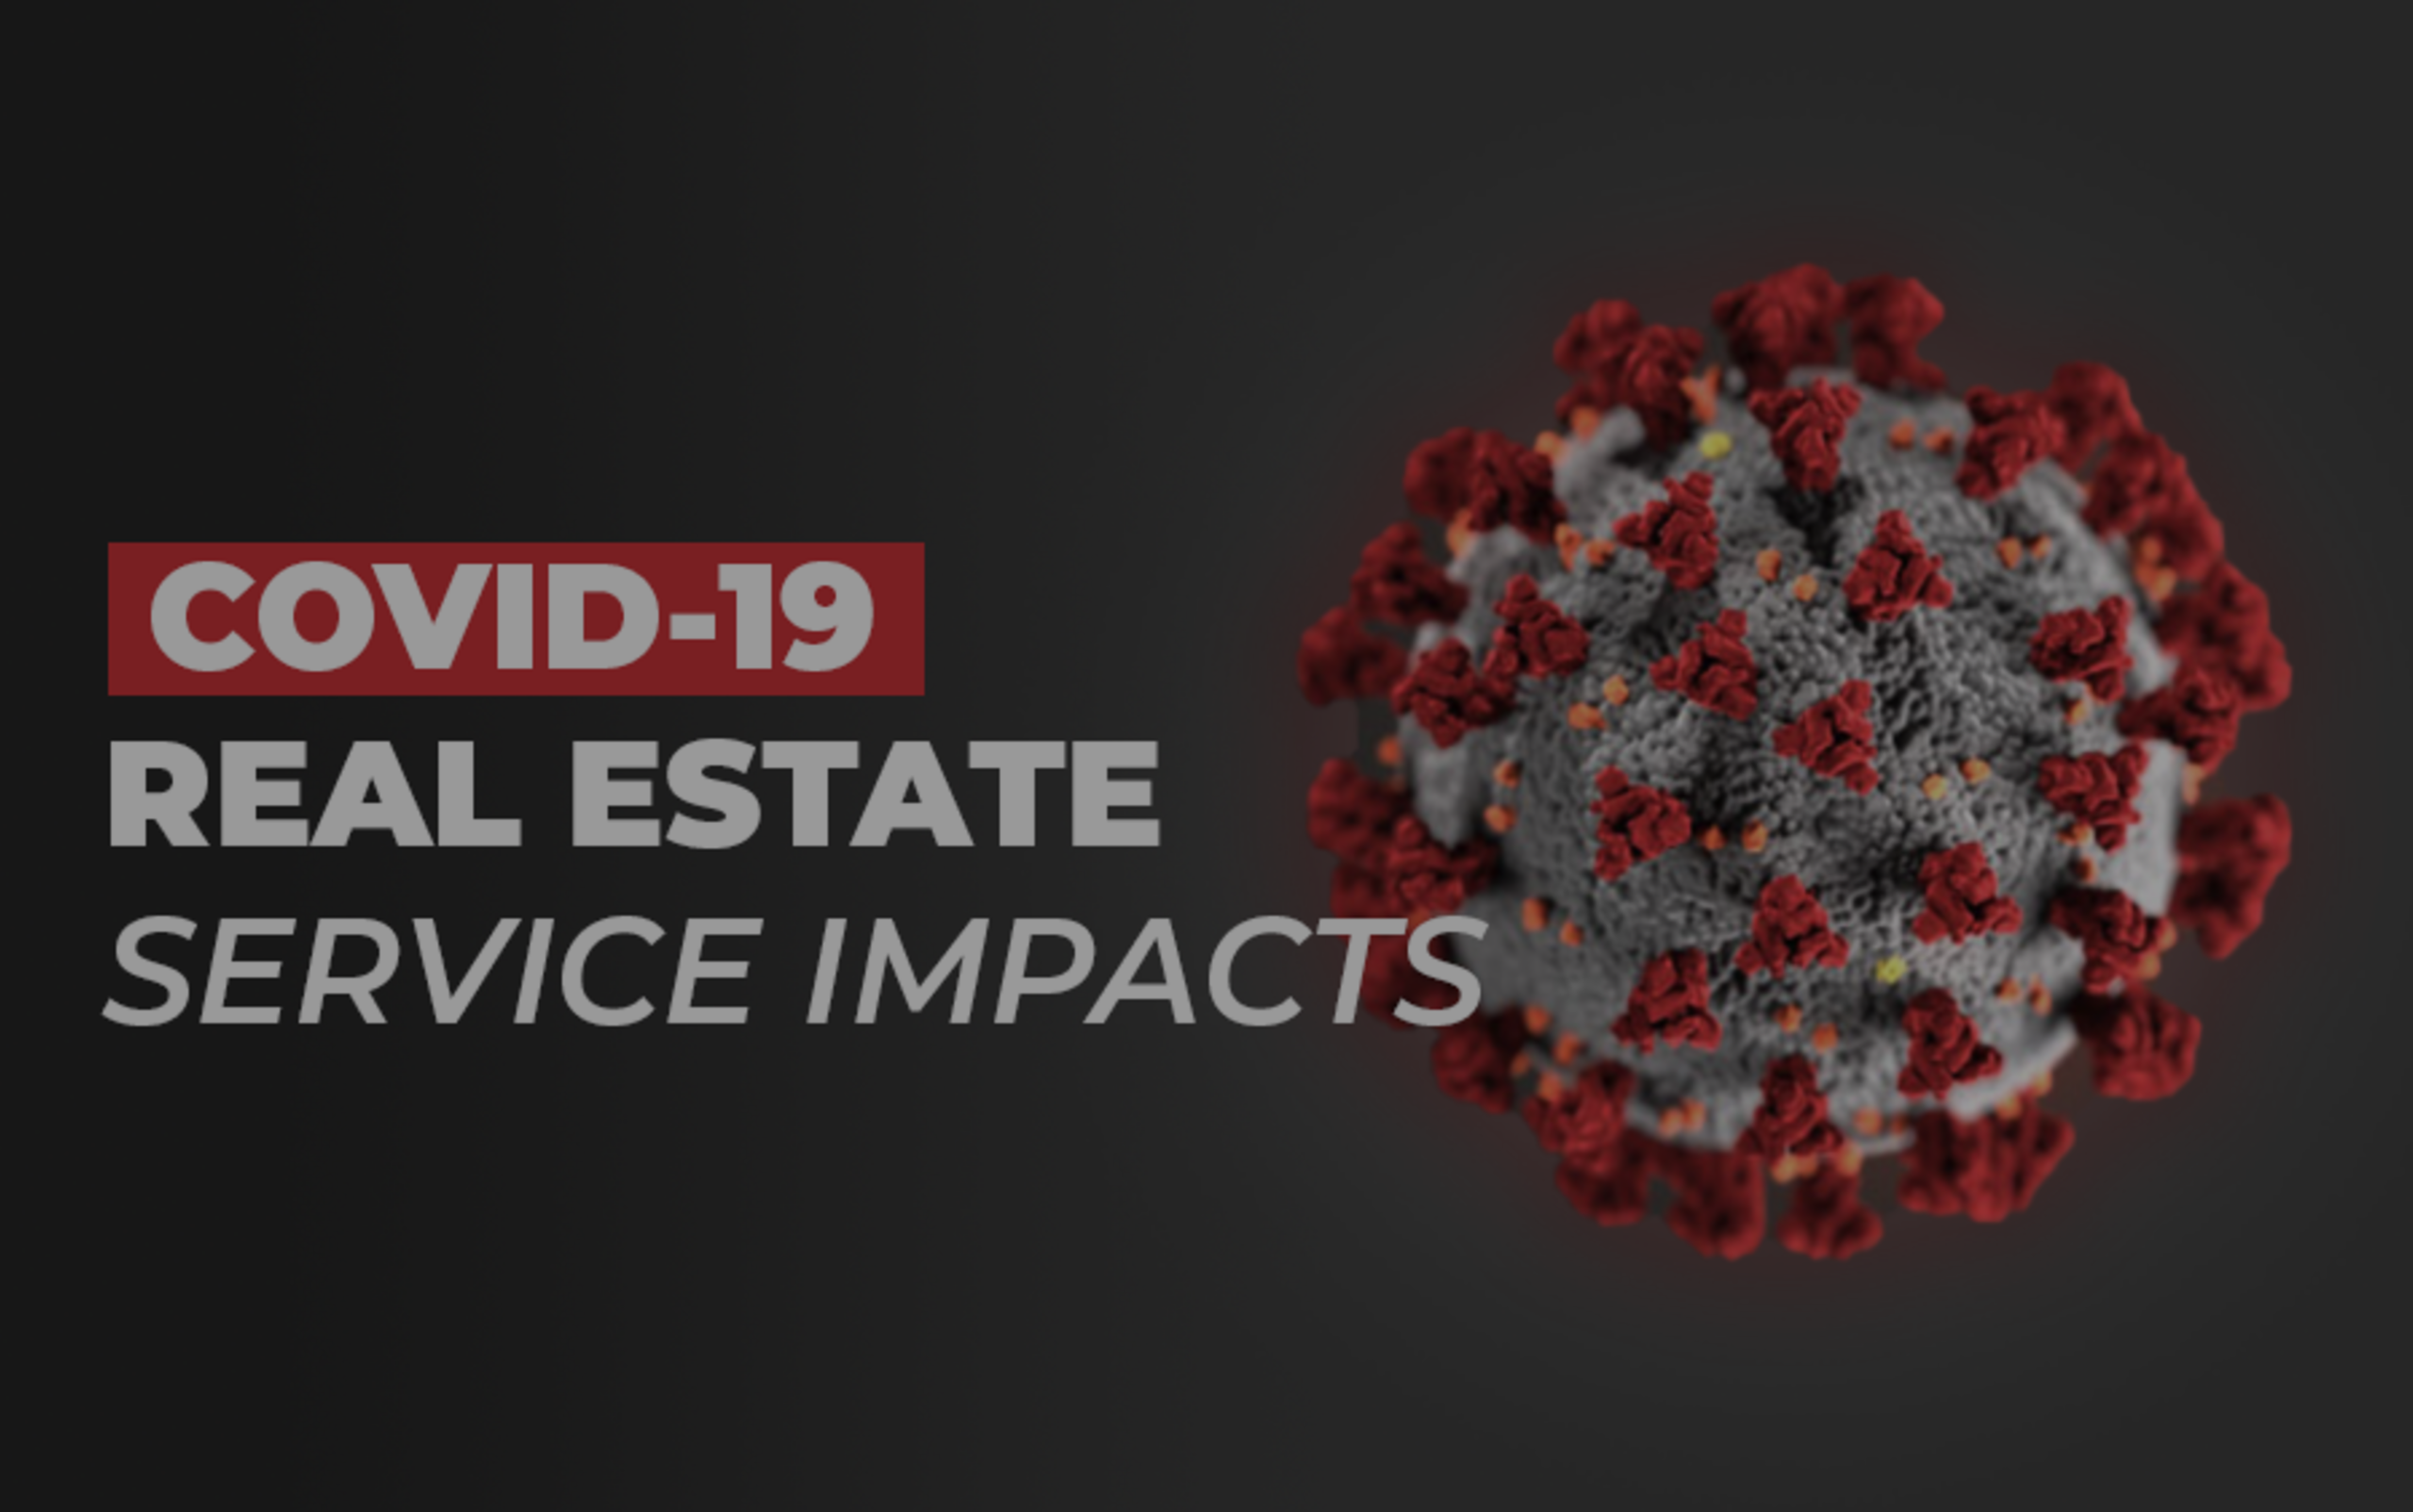 COVID-19 & Its Impact on Triangle Real Estate Services